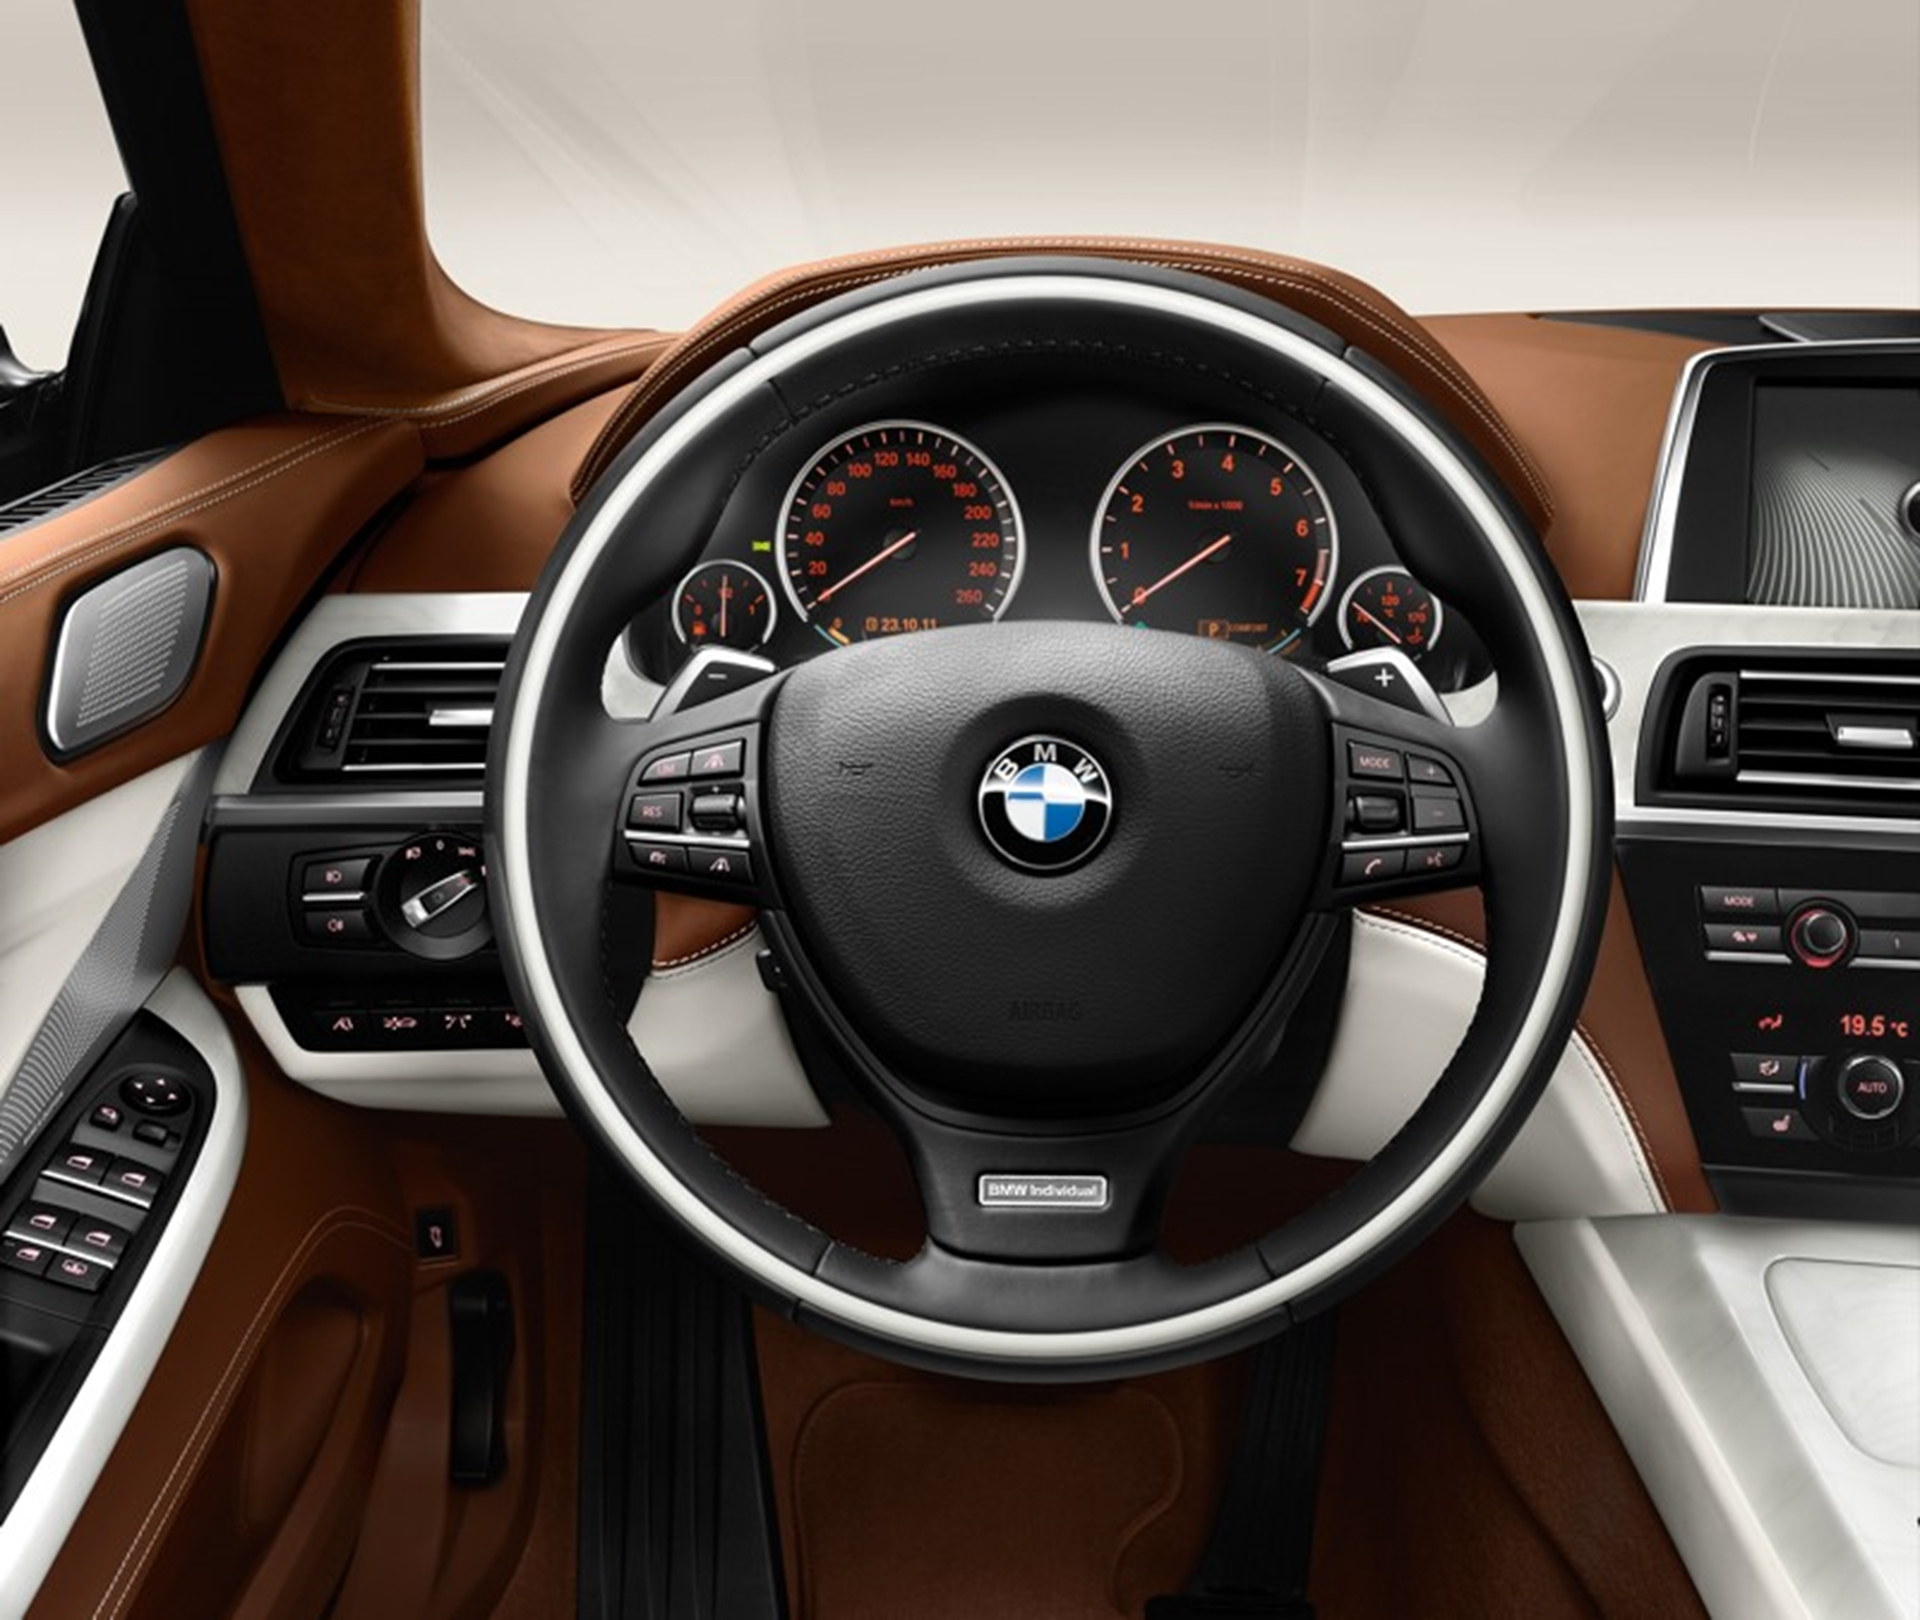 2013 BMW-6 Series Gran Coup Interior